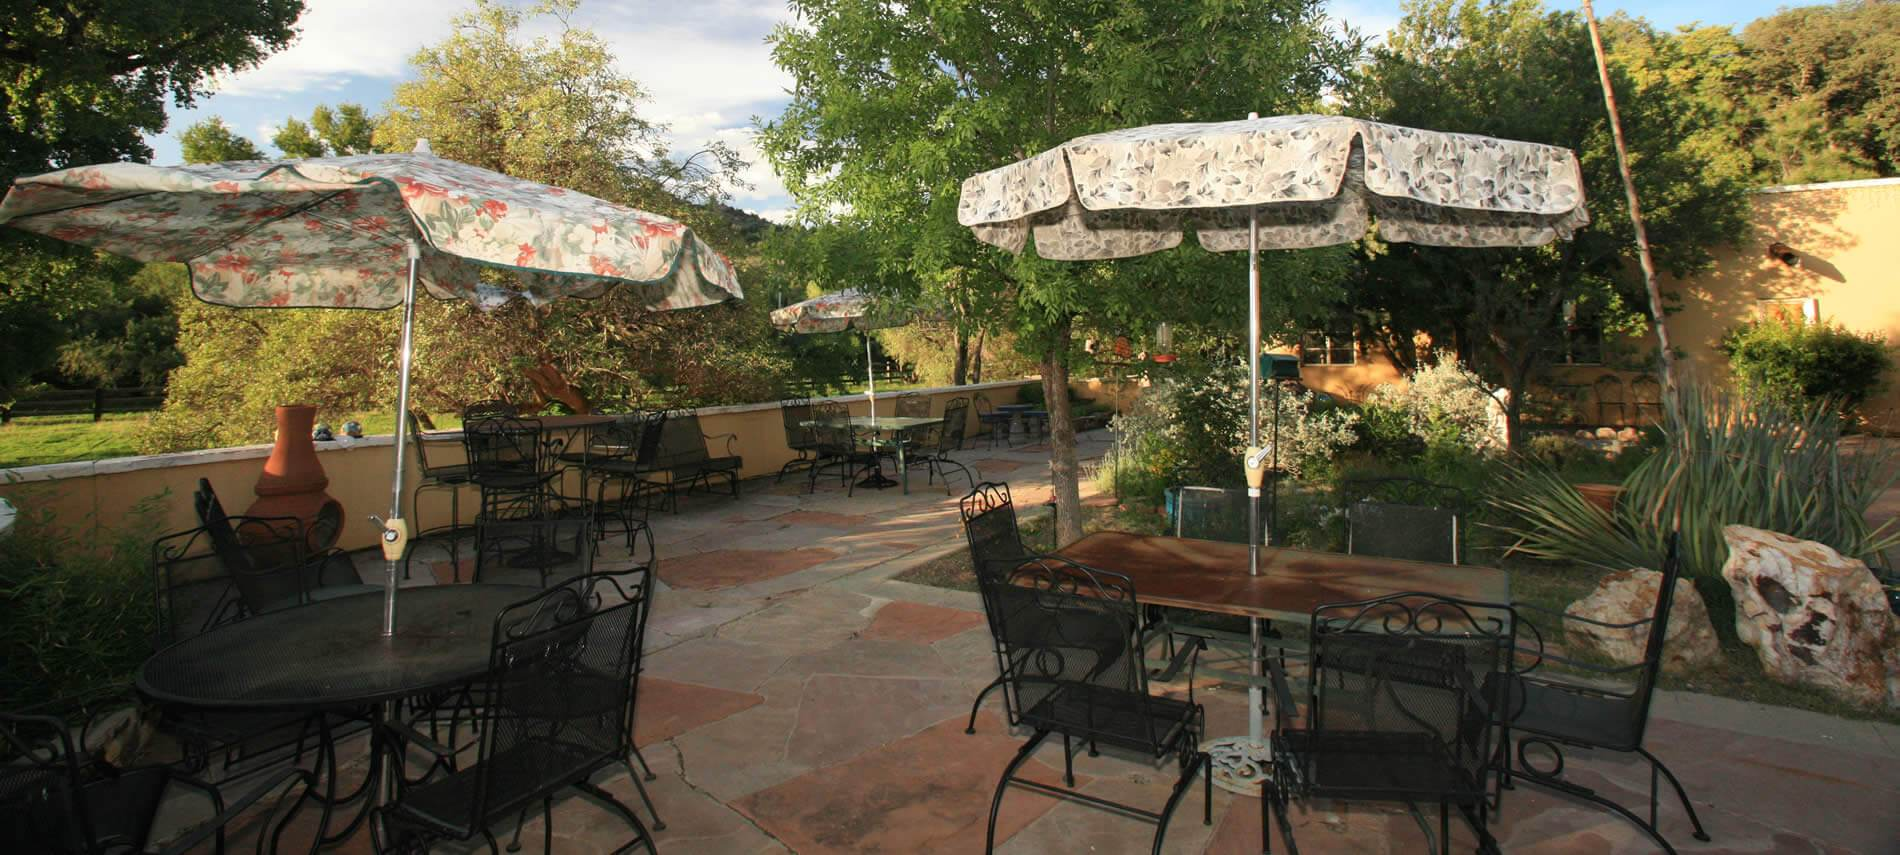 Bed and Breakfast in Southern Arizona